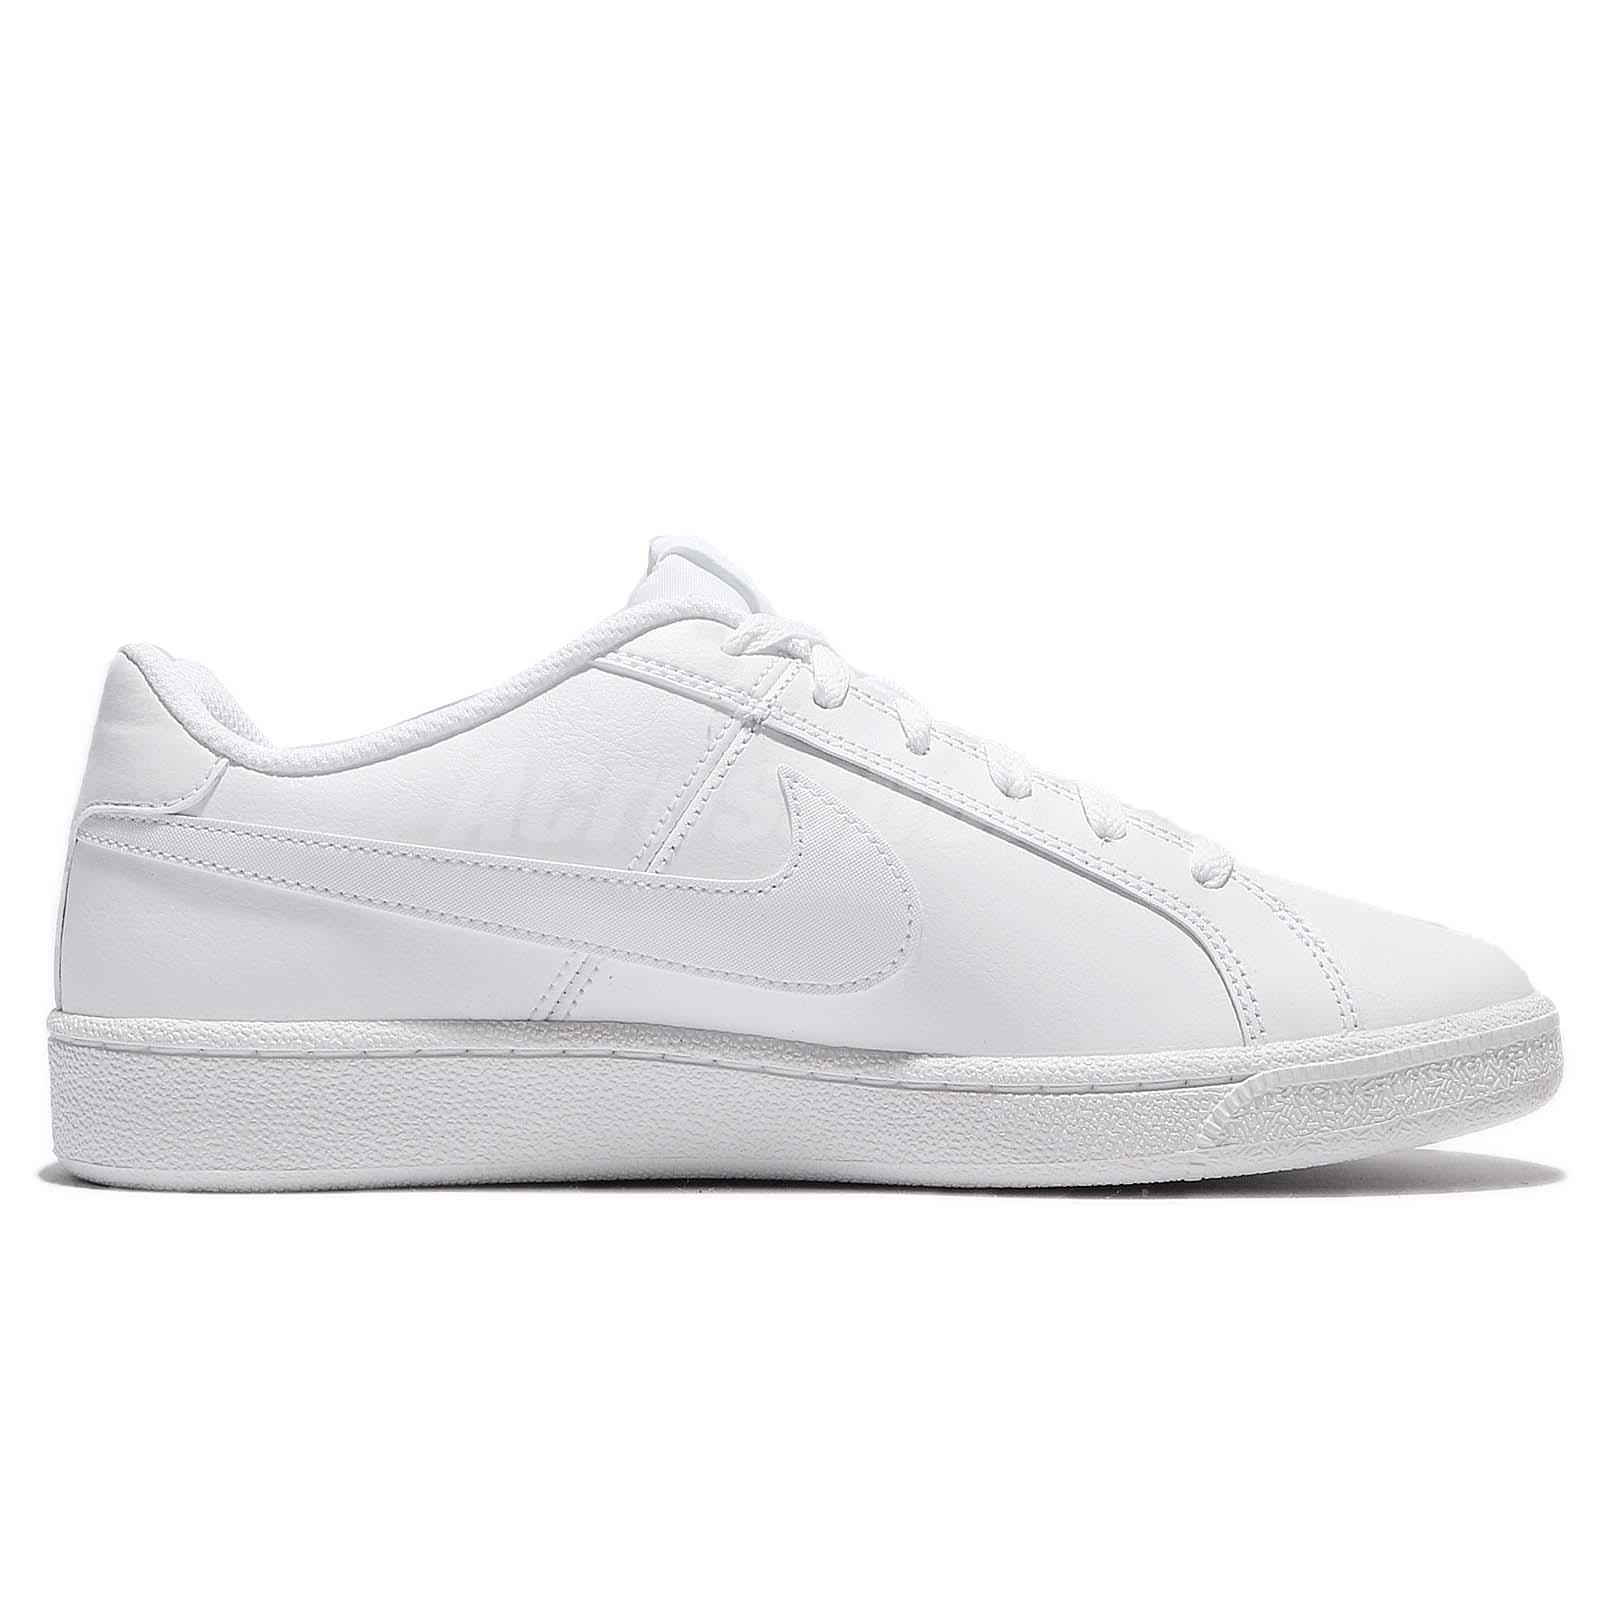 8a54fddd6859 Nike Court Royale Triple White Leather Men Casual Shoes Sneakers ...